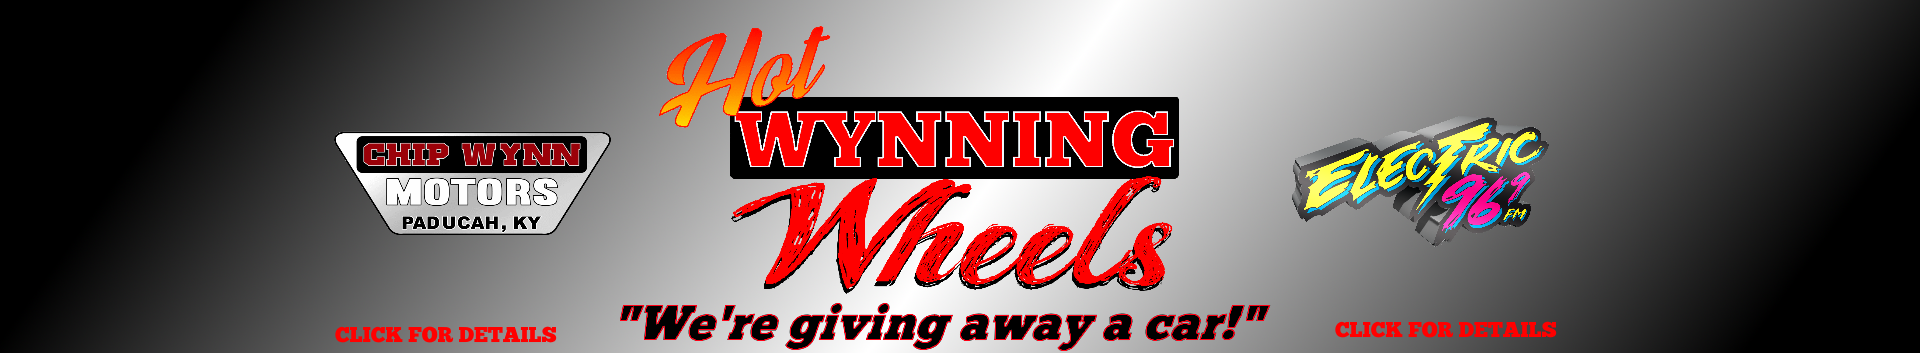 hot wynning wheels banner.png